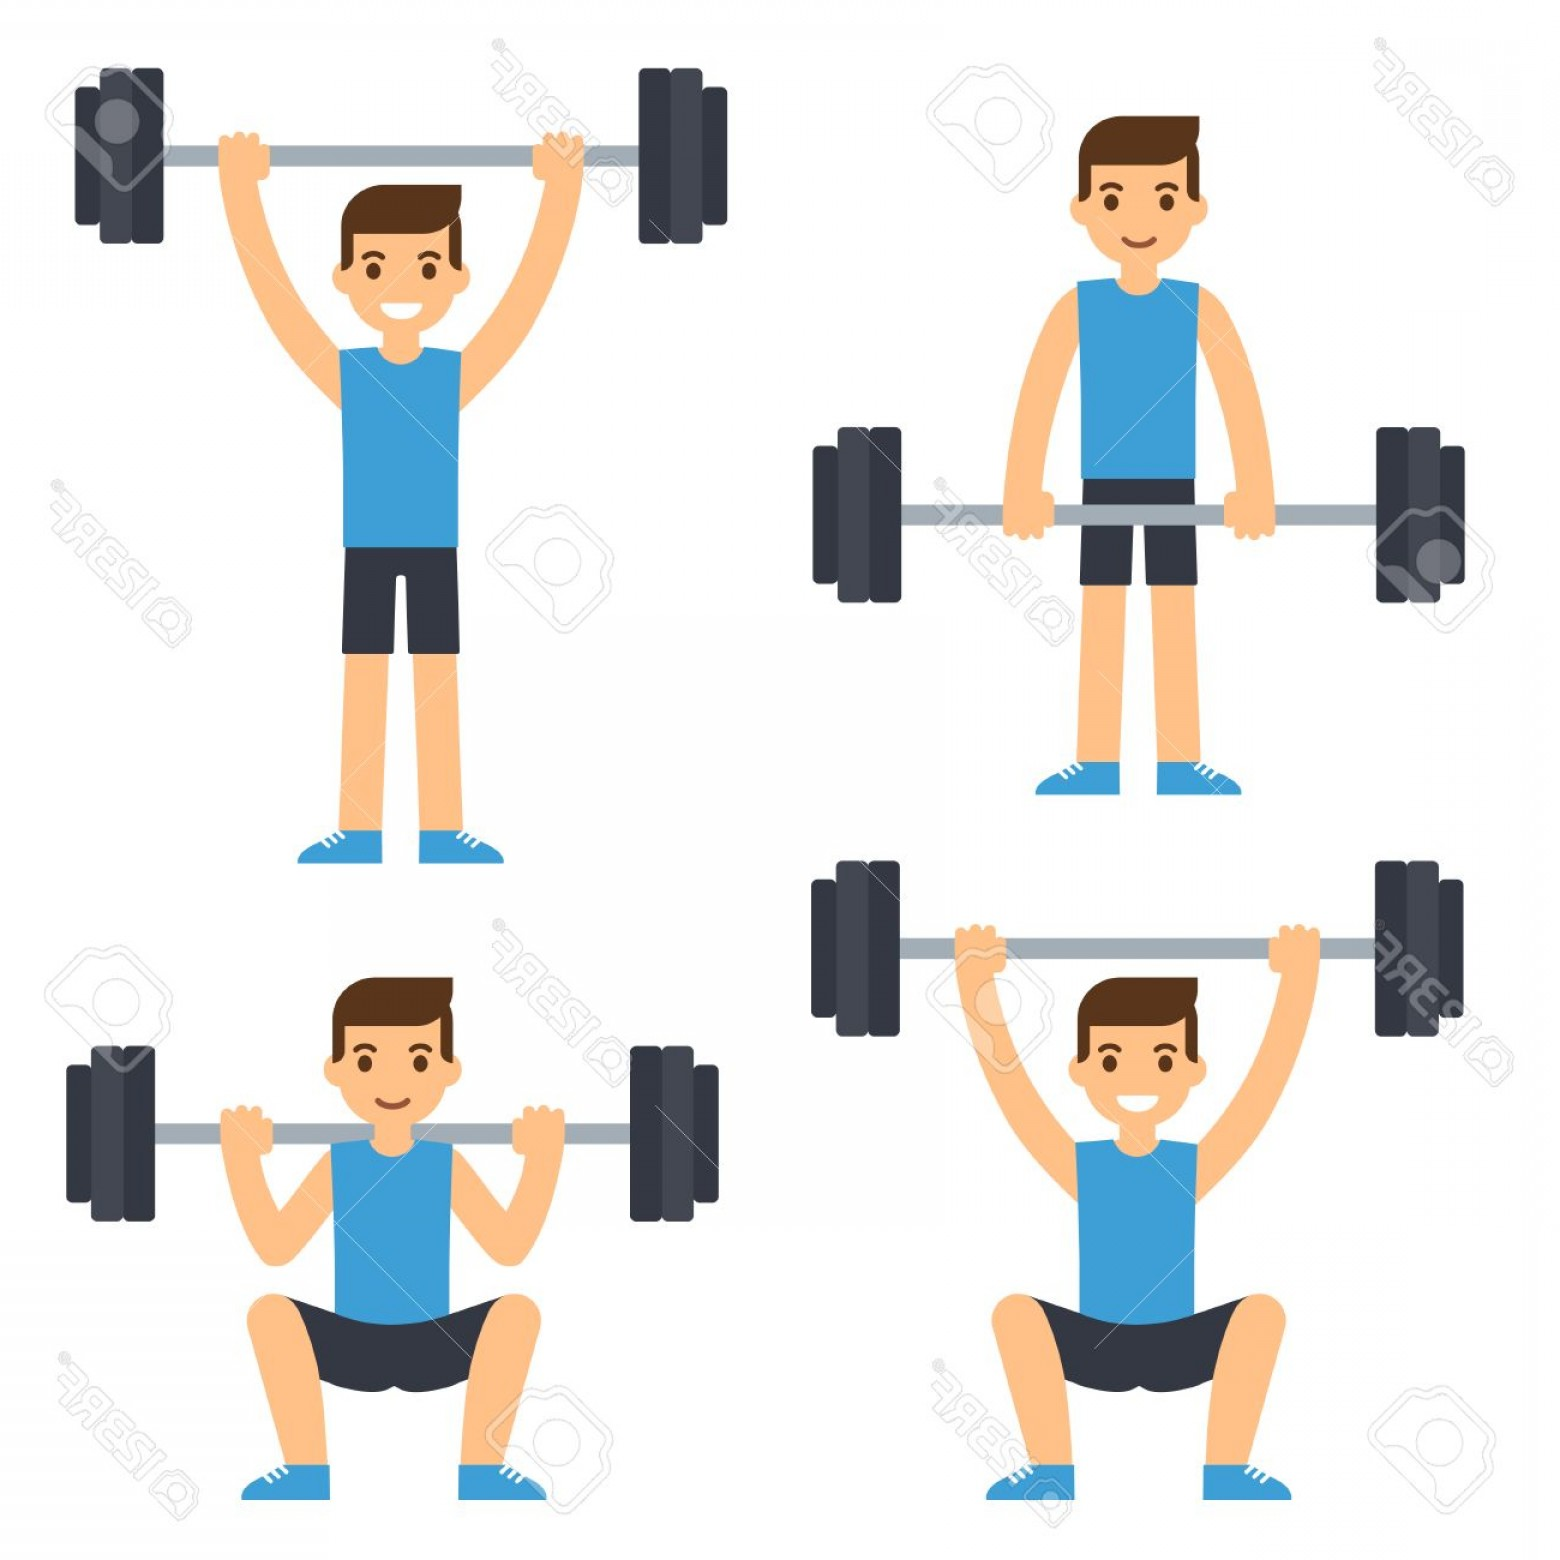 Vector Barbell Press: Photostock Vector Cartoon Man Barbell Exercises Squat Deadlift Overhead Press Weight Lifting Illustration Modern Flat